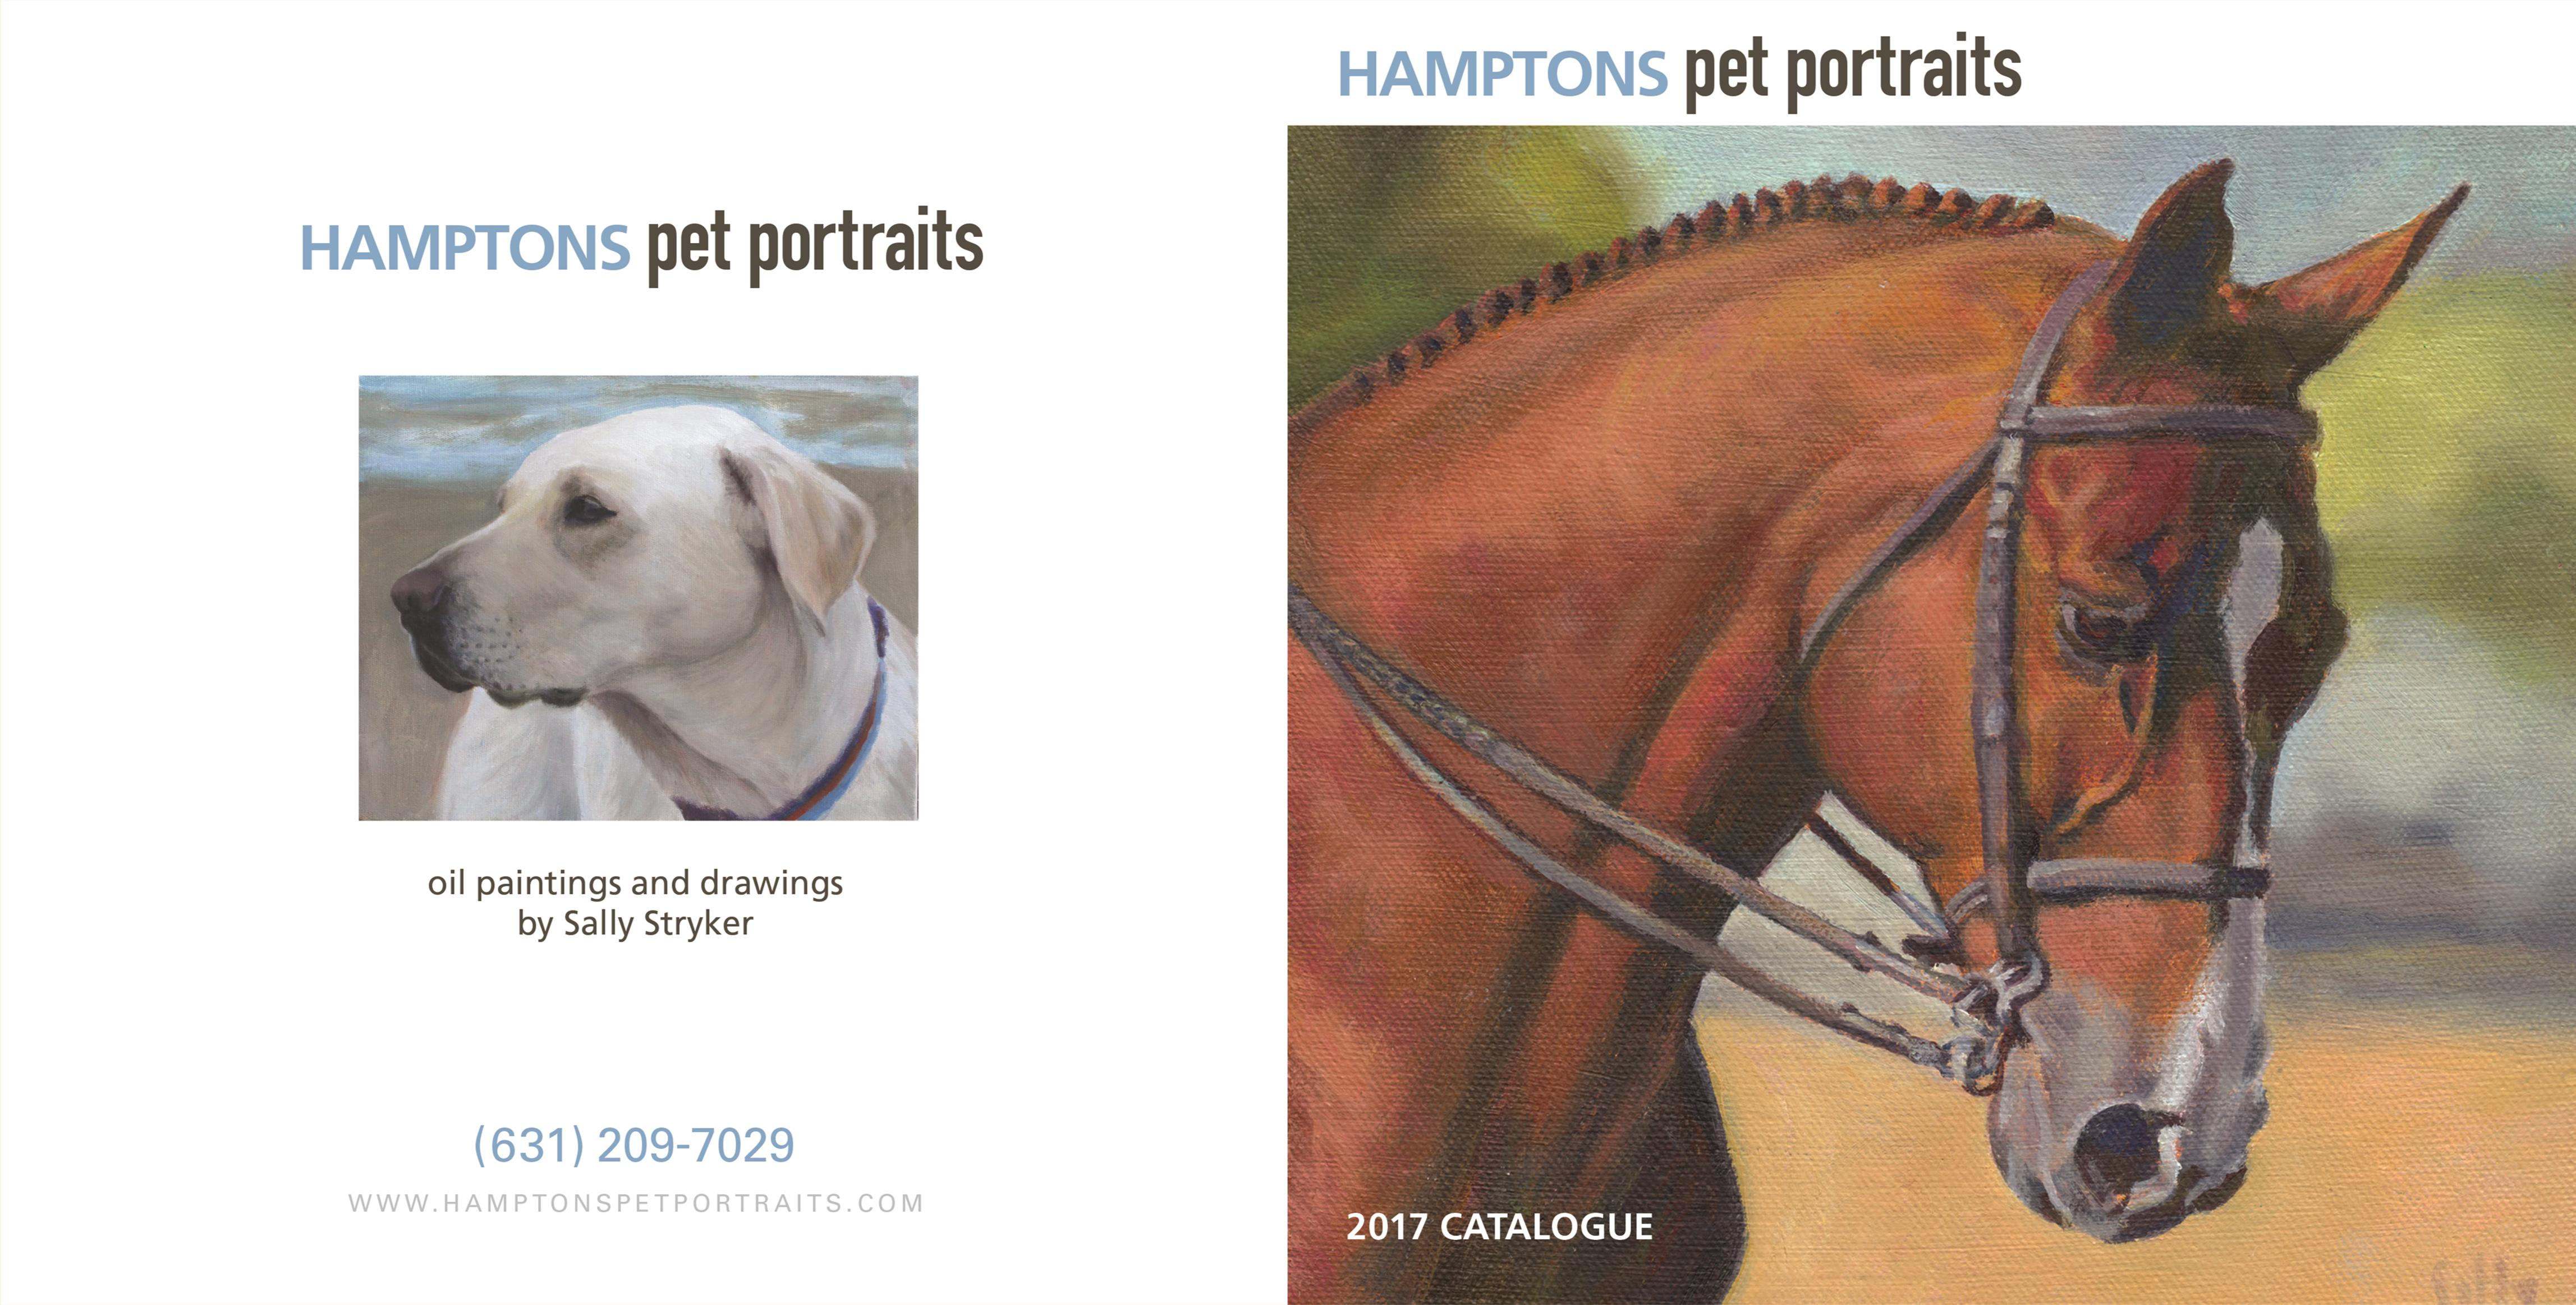 2016 Catalogue Hamptons Pet Portraits - Horses cover image